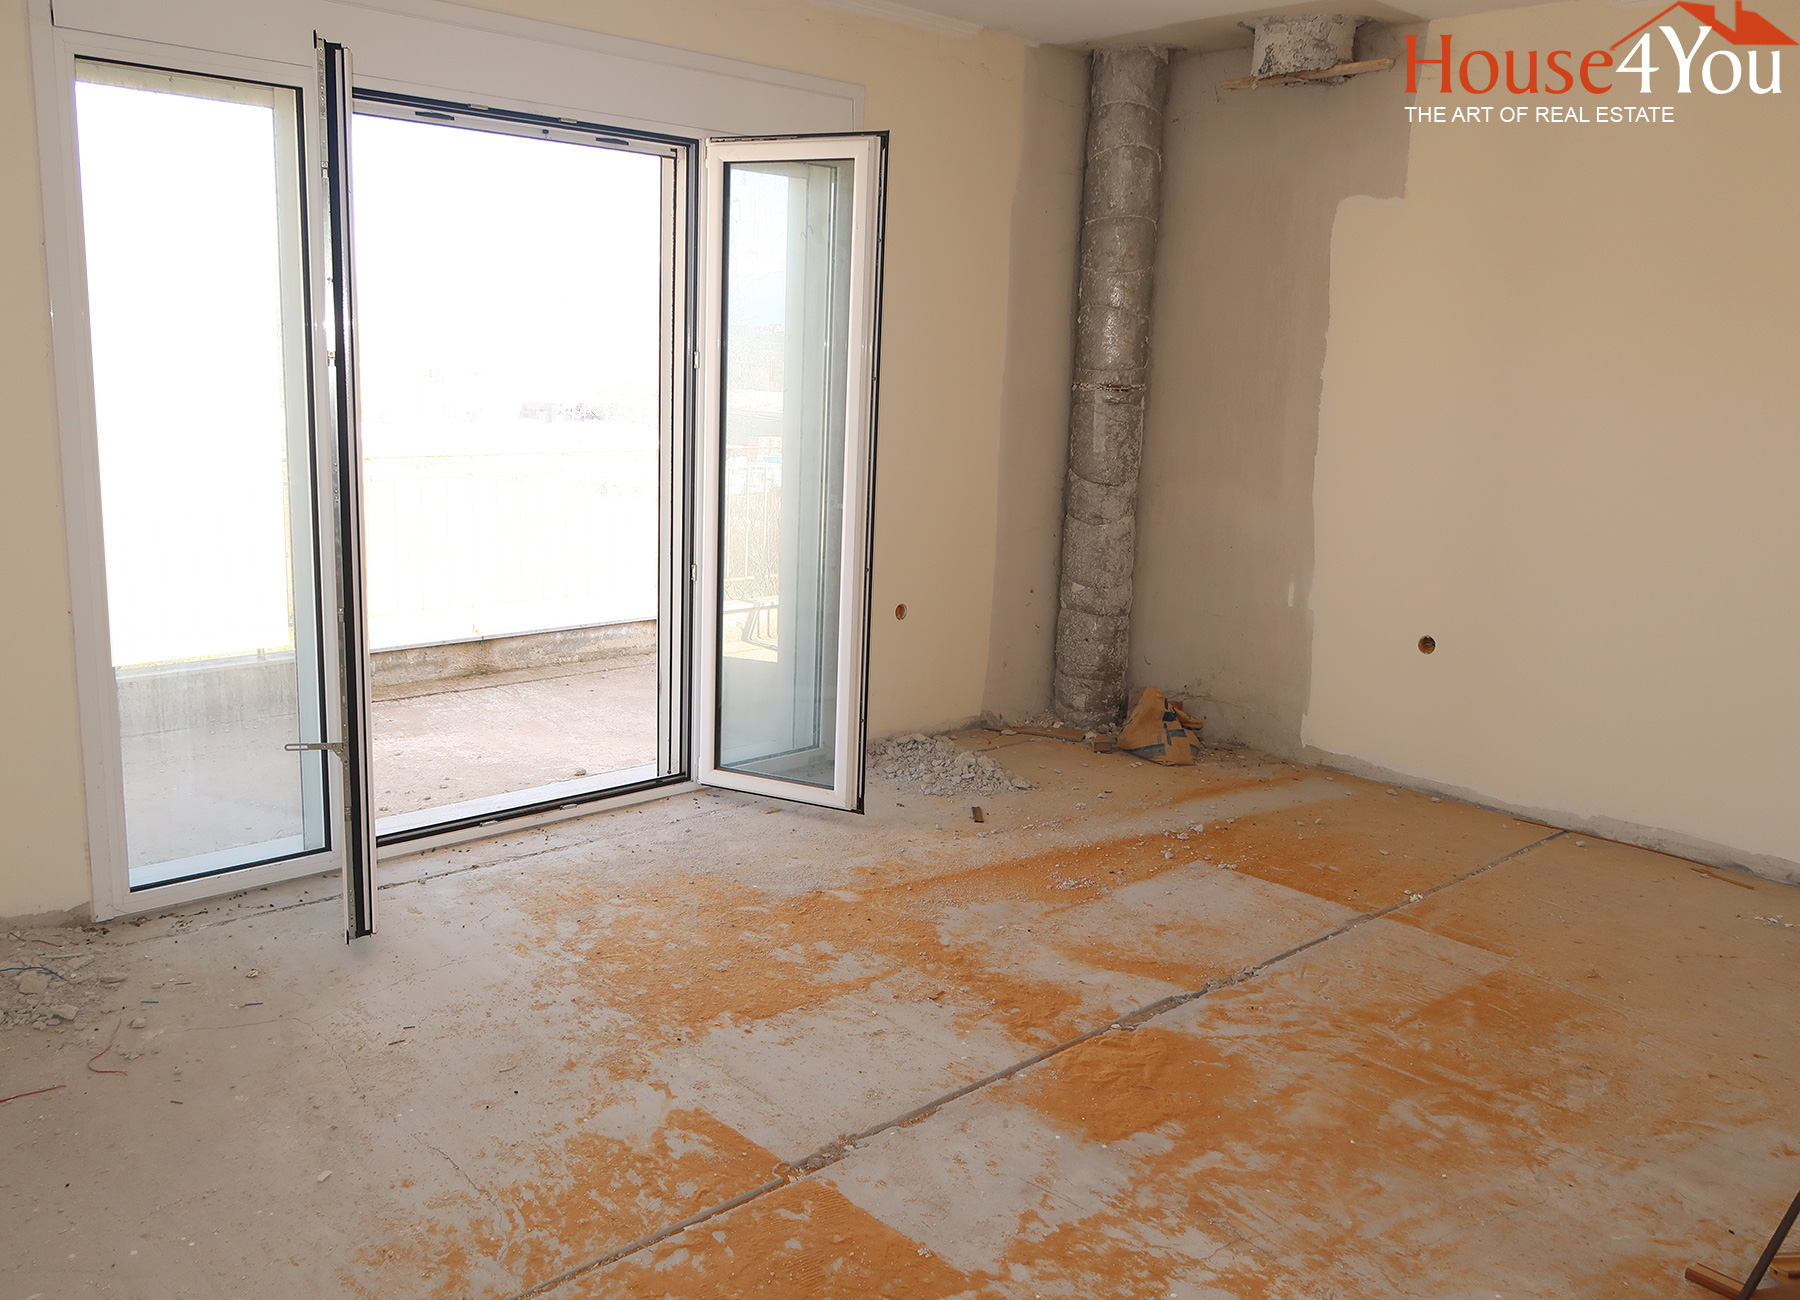 For sale a 3 bedroom apartment of 100 sq.m. on the 1st floor of 2013 near Vlachostrata in Stavraki, Ioannina